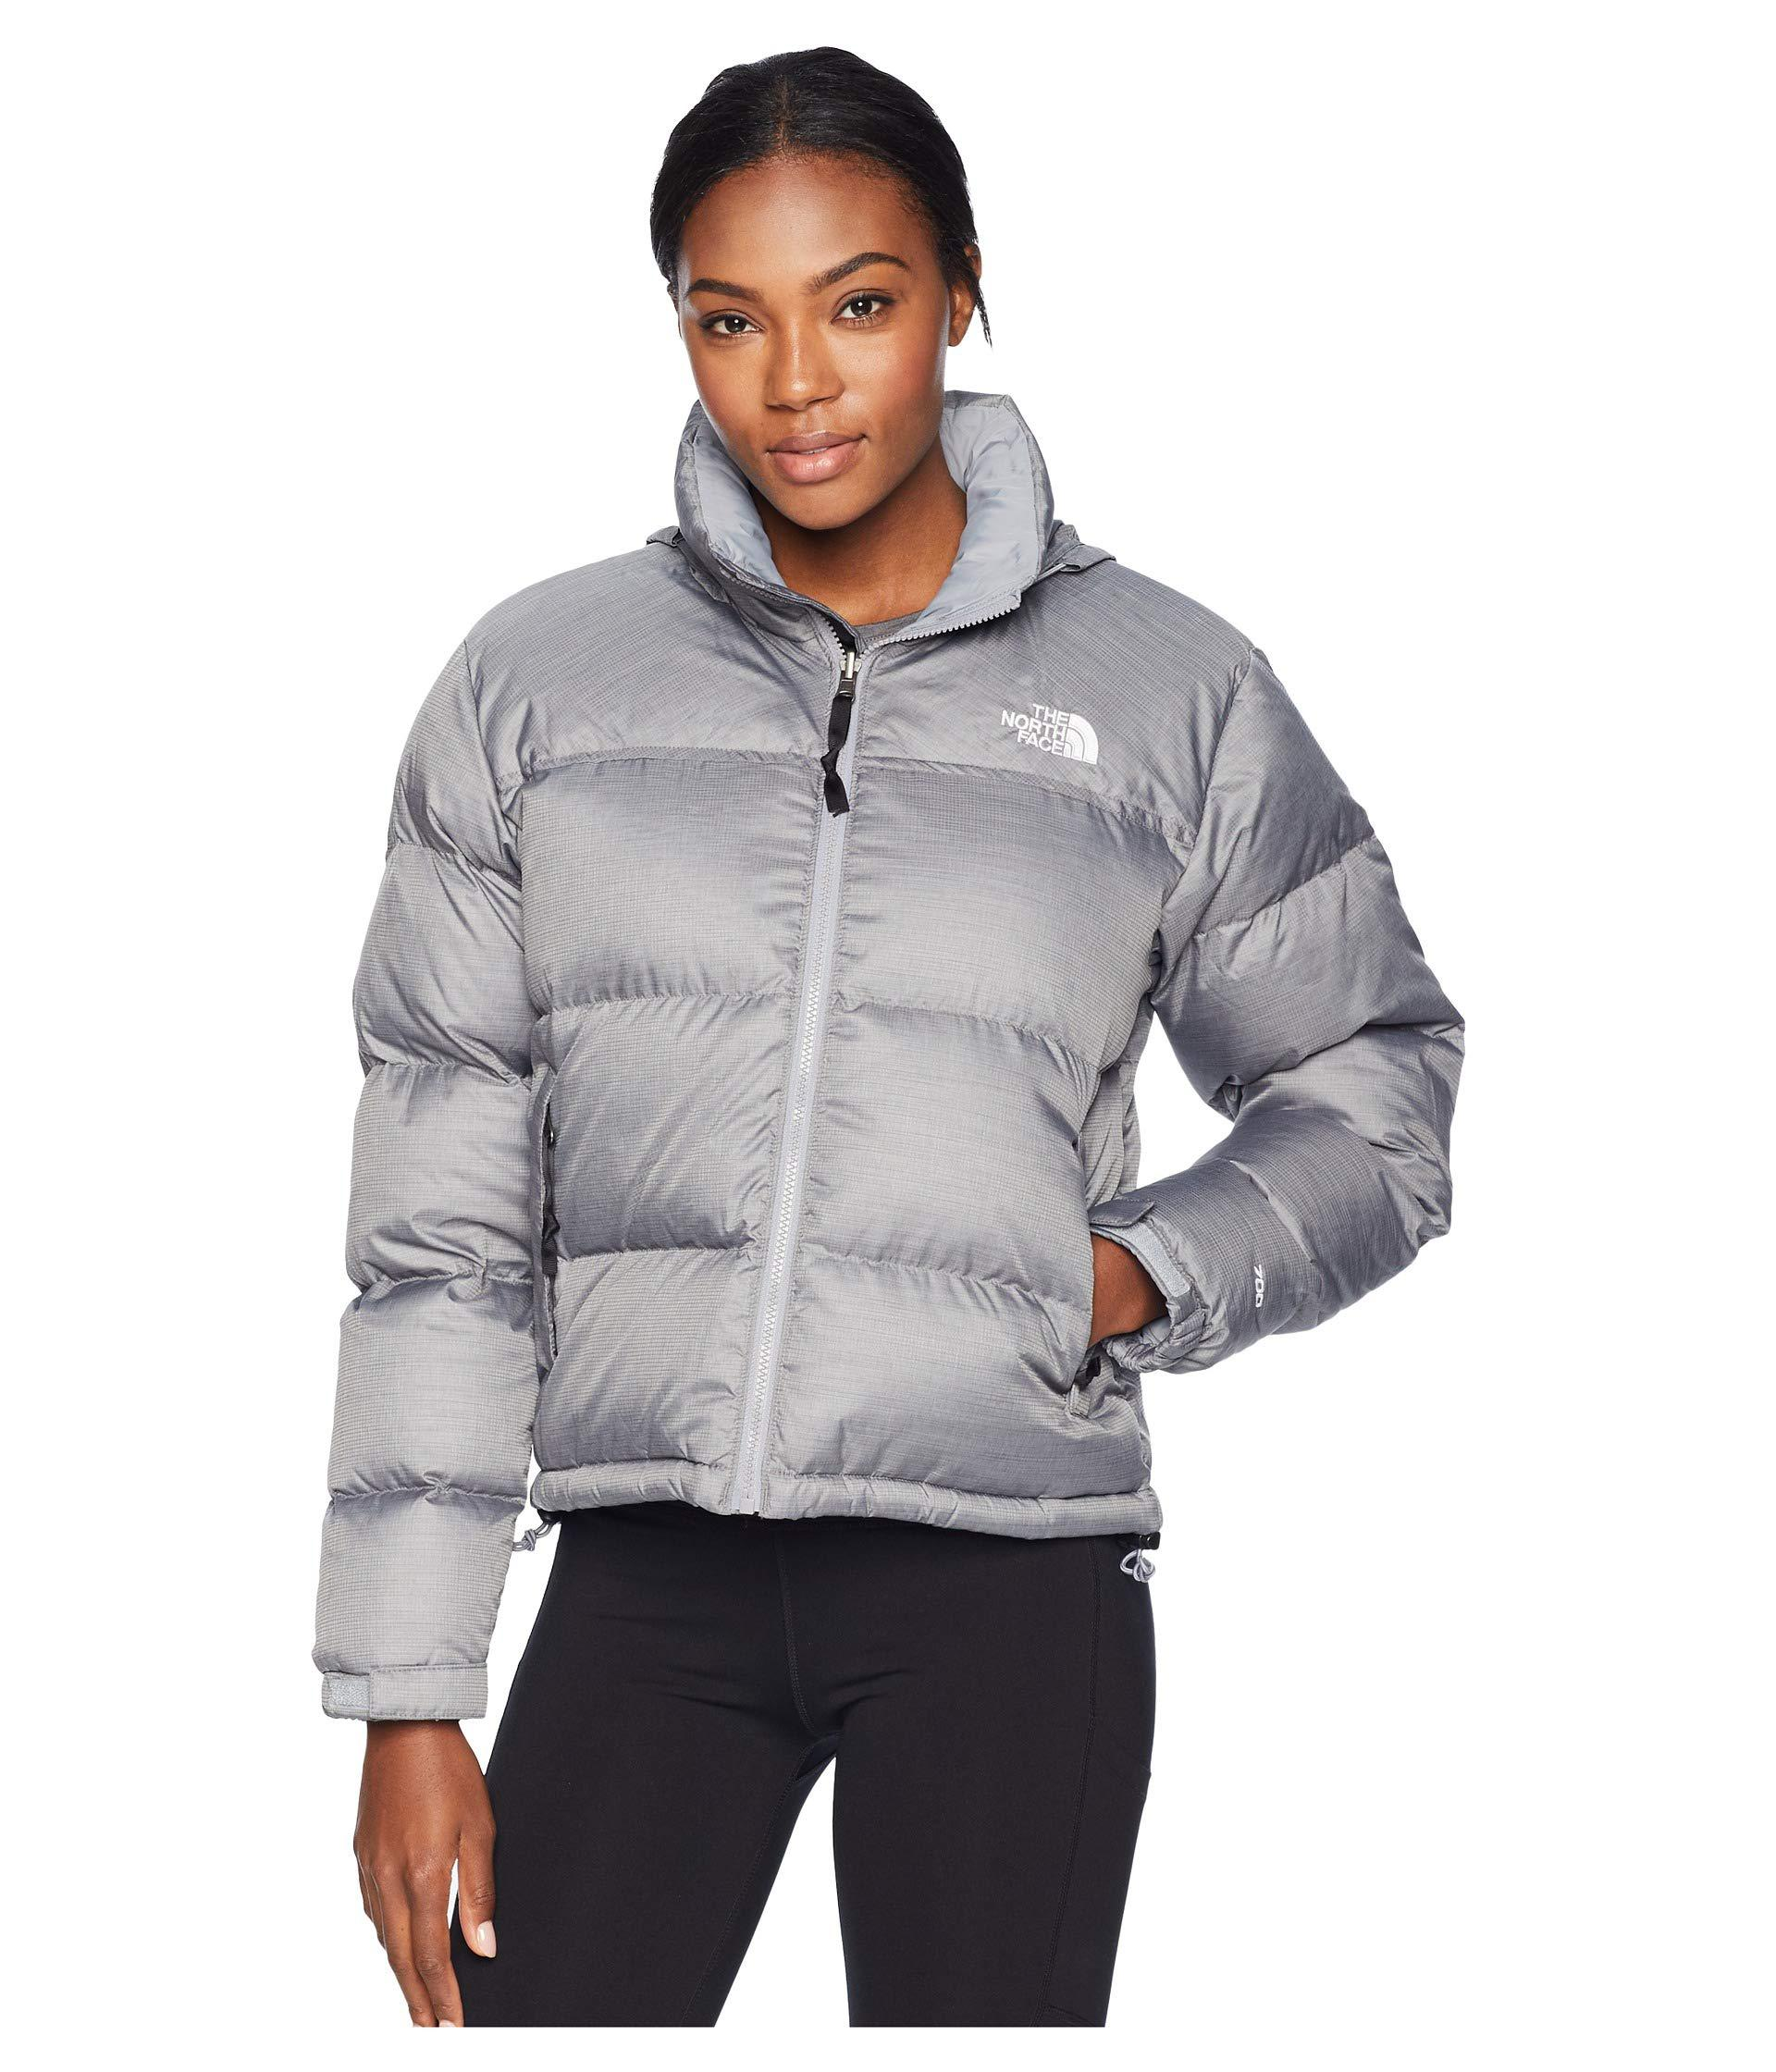 Lyst - The North Face 1996 Retro Nuptse Jacket (tnf Medium Grey ... 9885f12b9